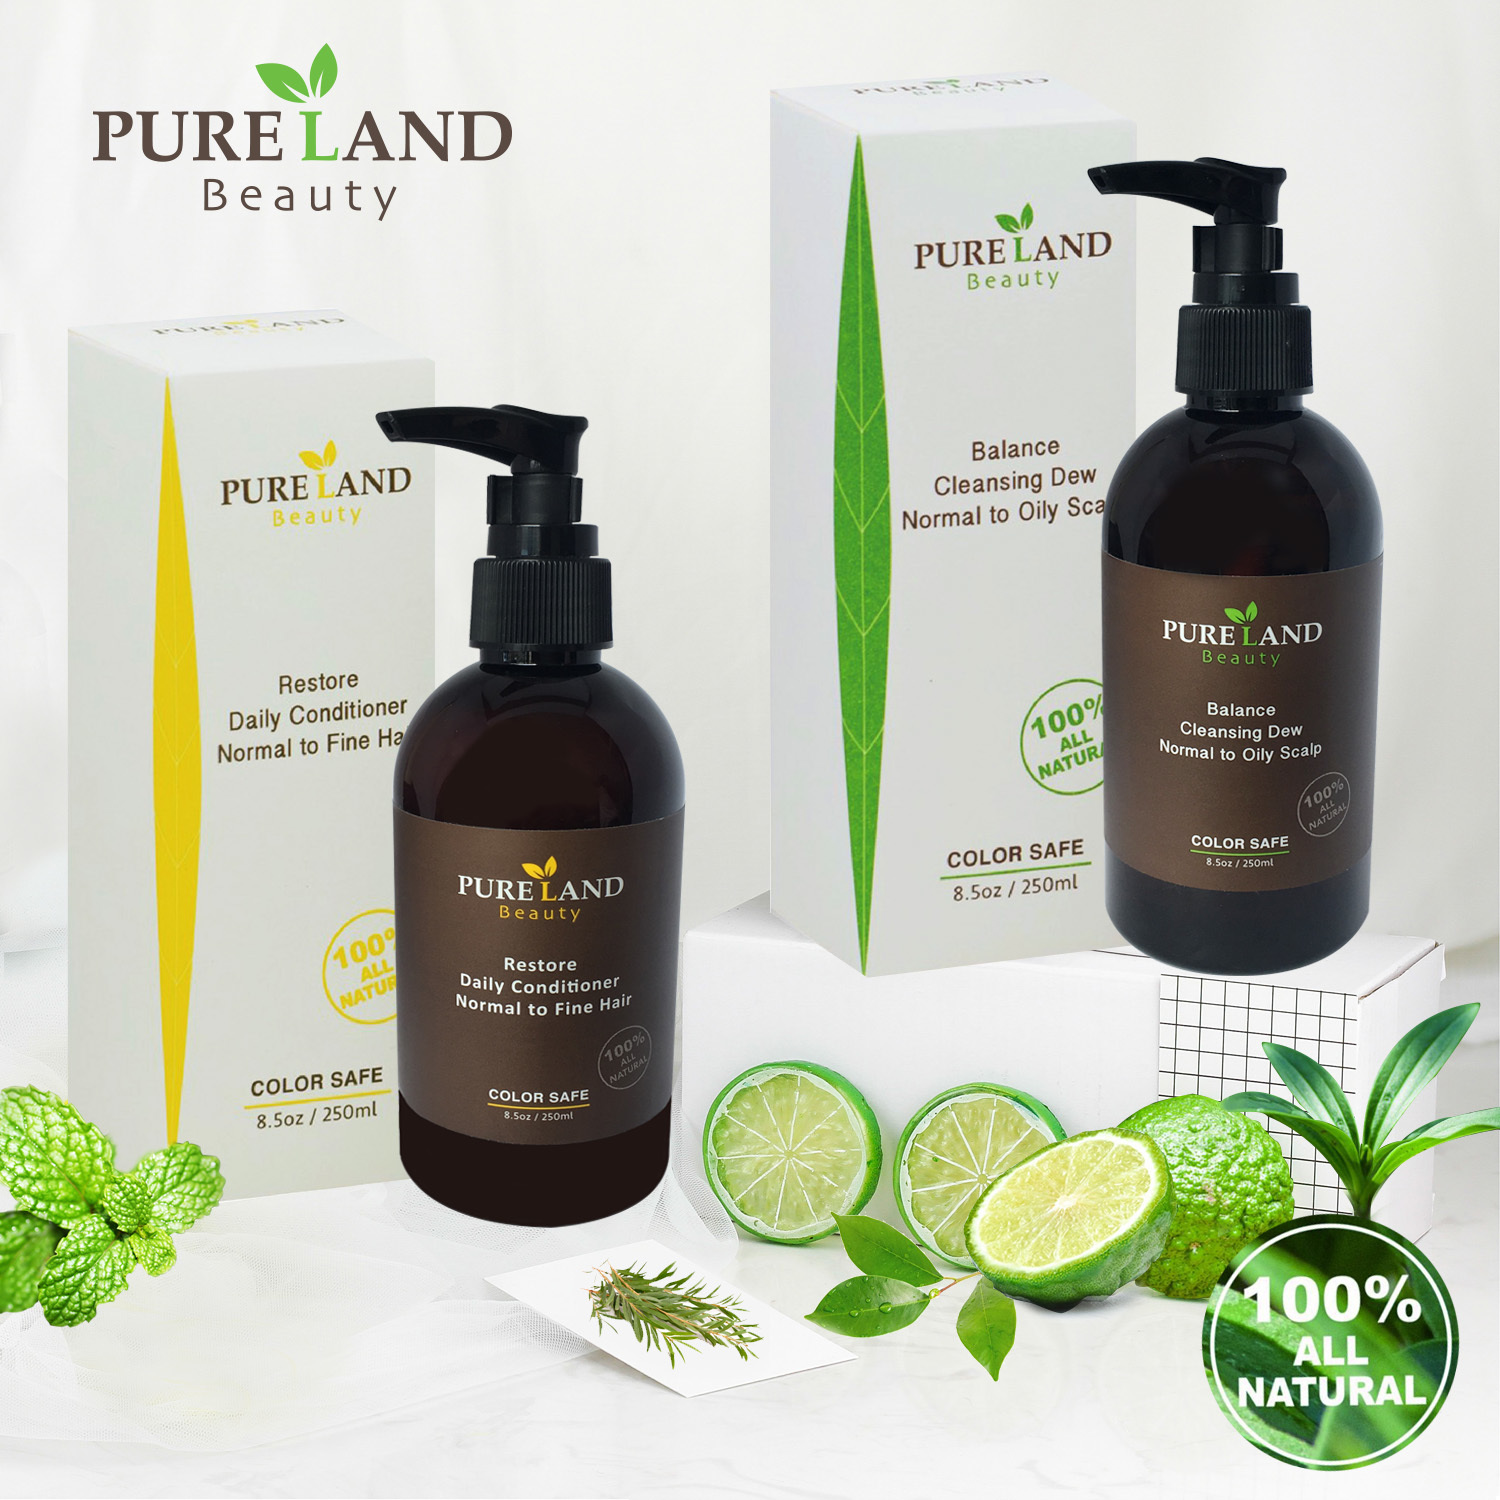 Pureland Beauty  Balance Cleansing Dew and Restore Daily Conditioner Set - All Natural, for Normal to Oily Scalp,reducing unbalanced scalp disorders DEEP CLEANSING 00000